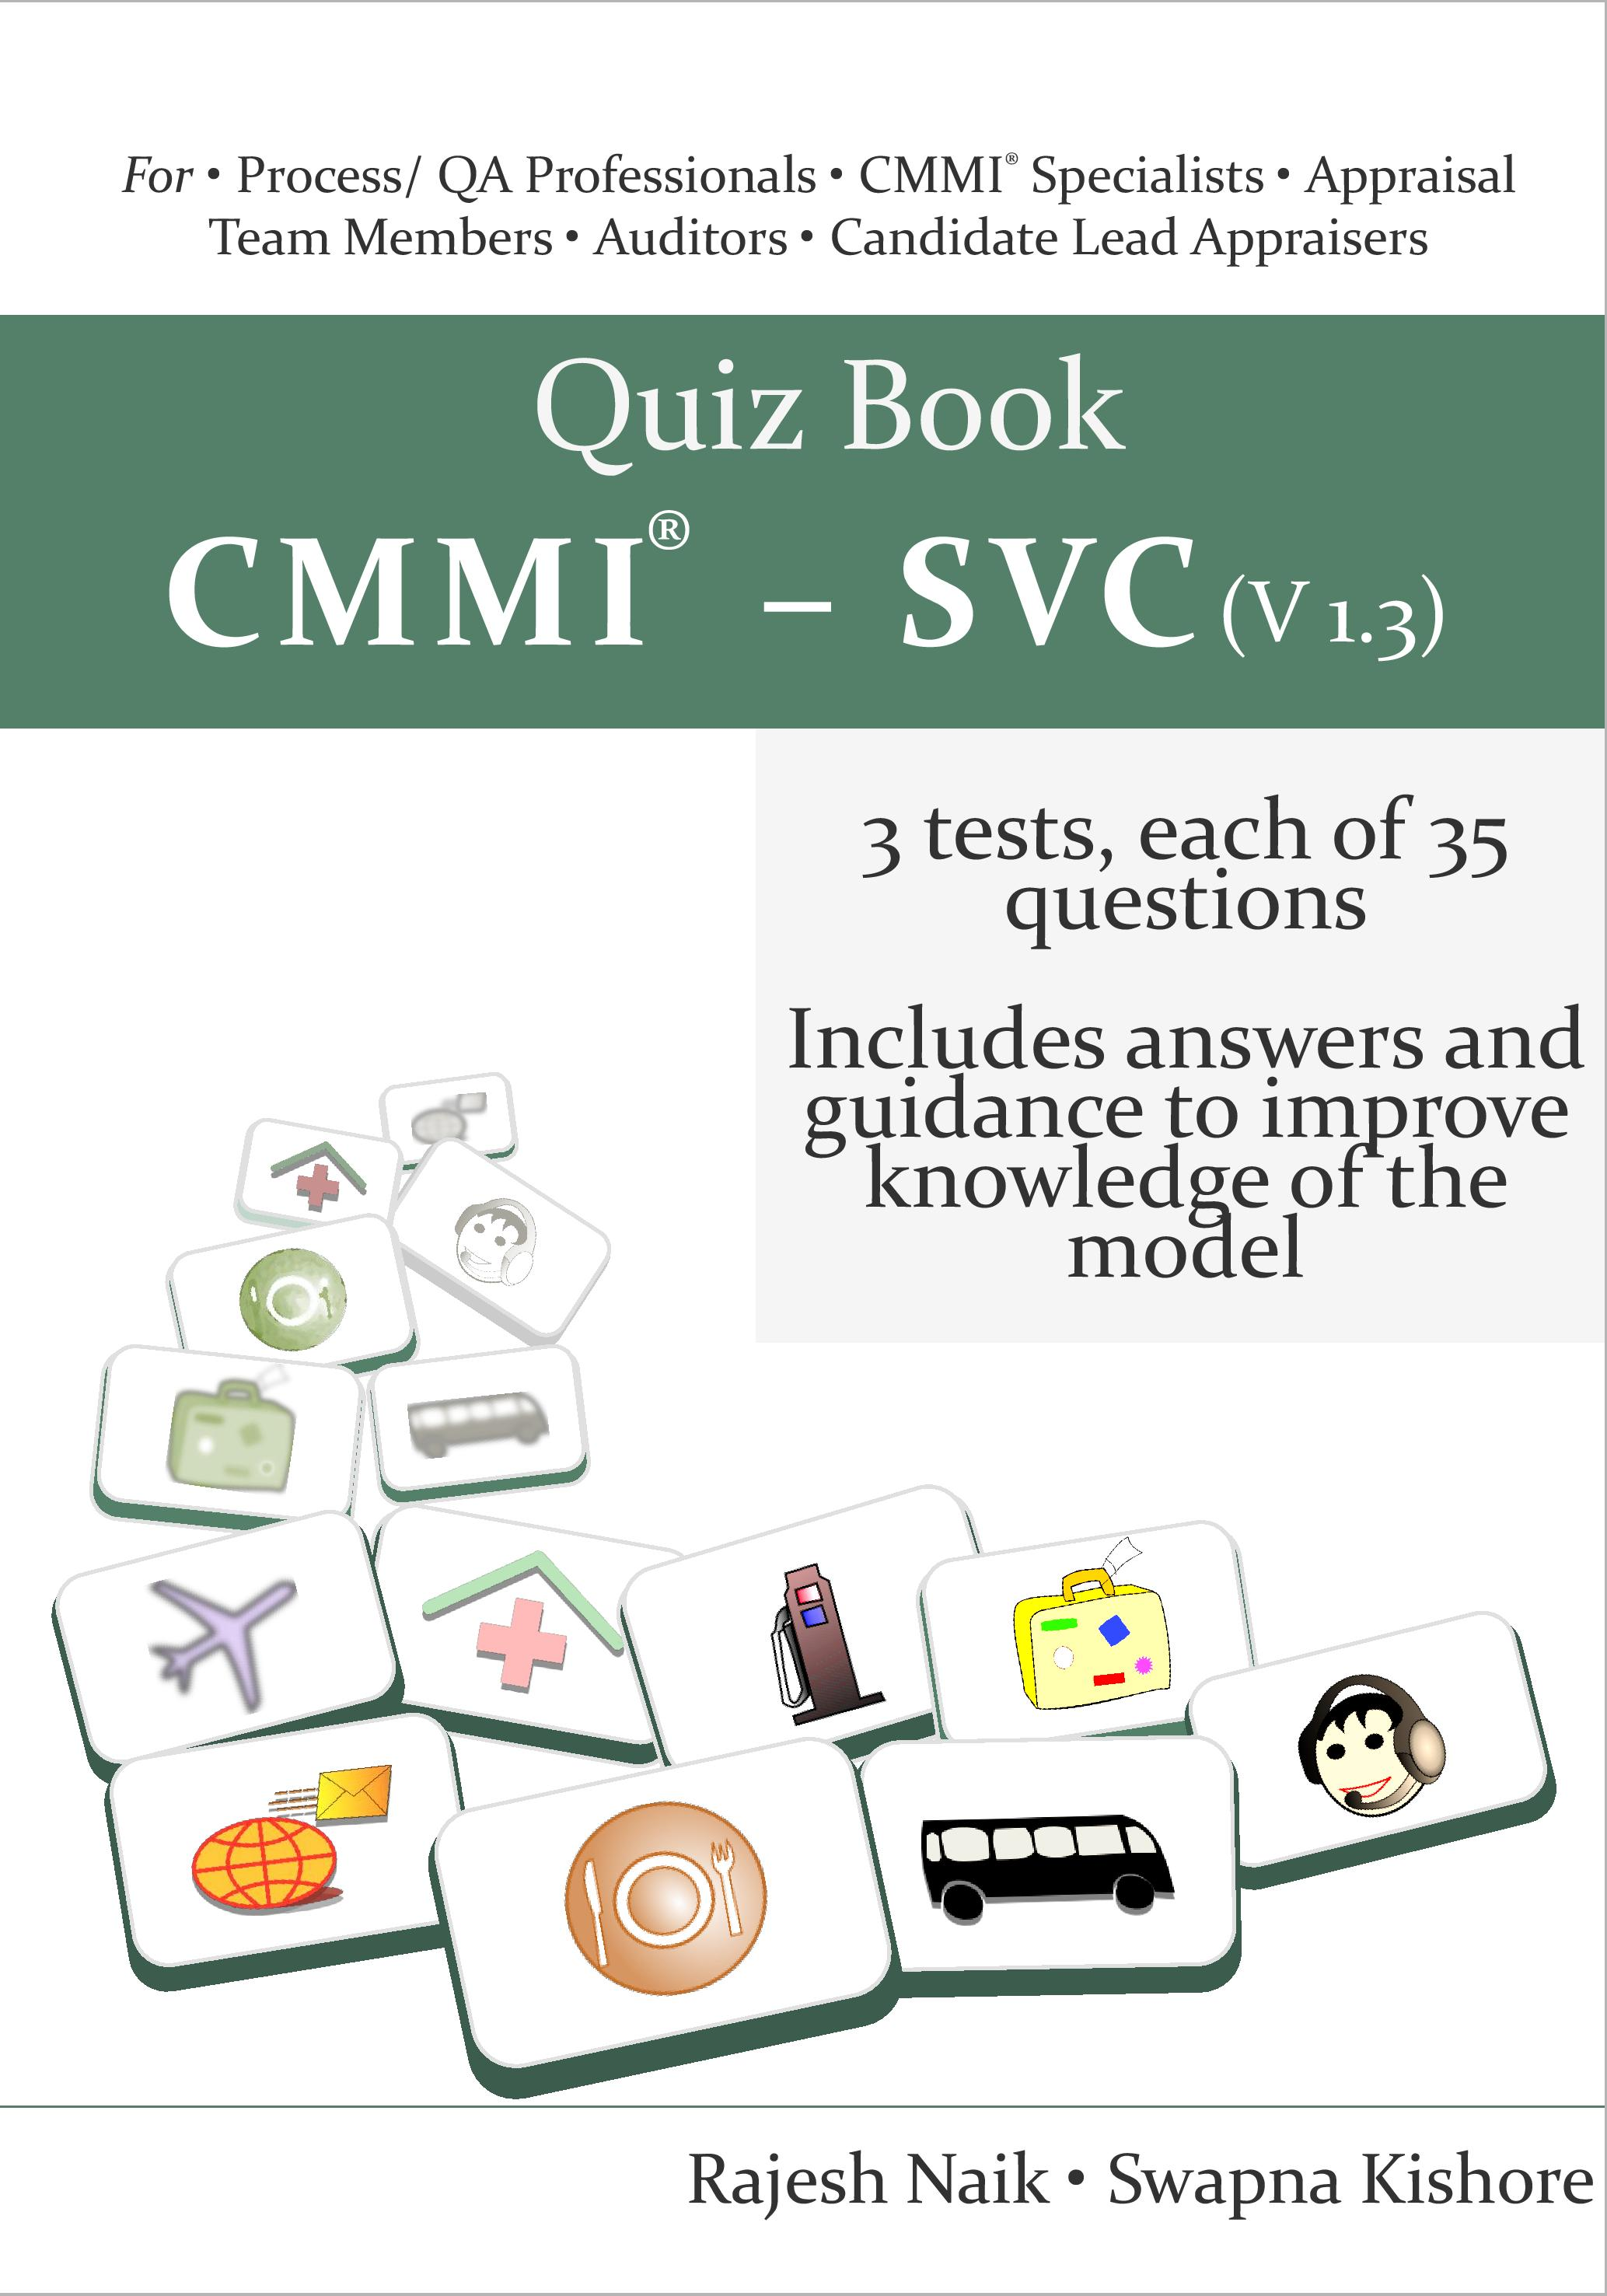 Image forQuiz Book on CMMI- SVC (v1.3)